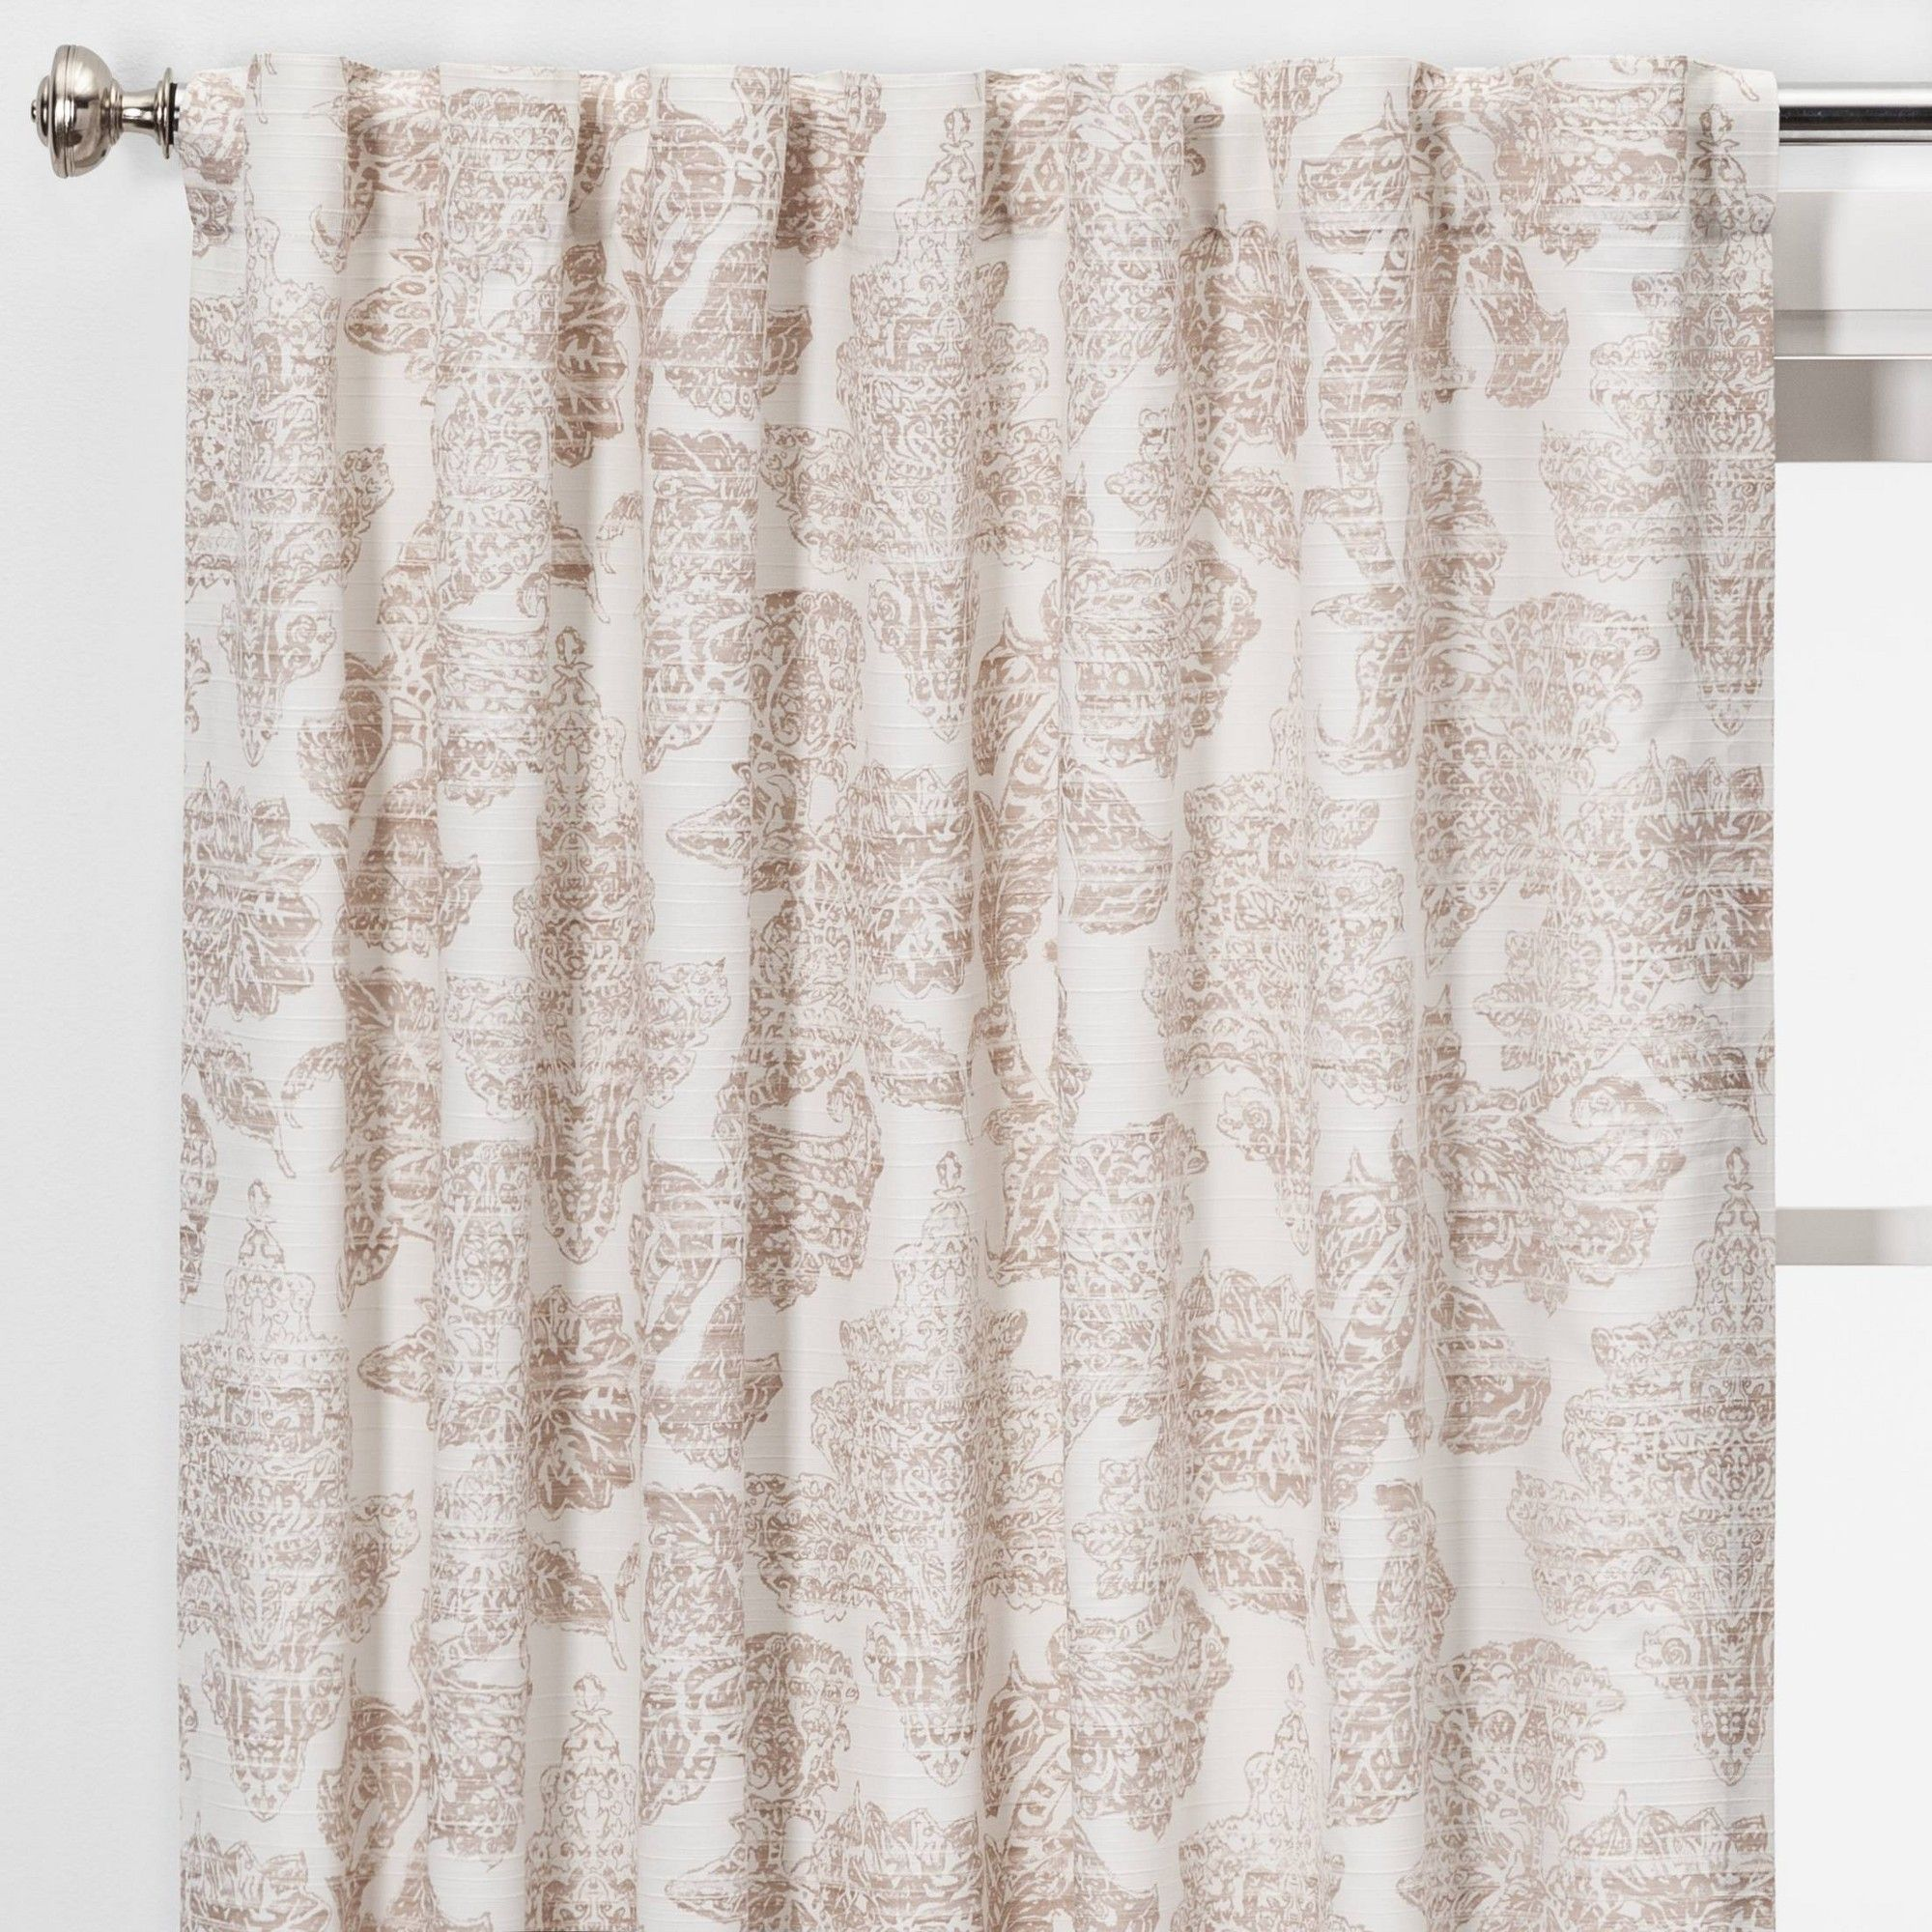 95 X54 Charade Floral Light Filtering Curtain Panel Pink